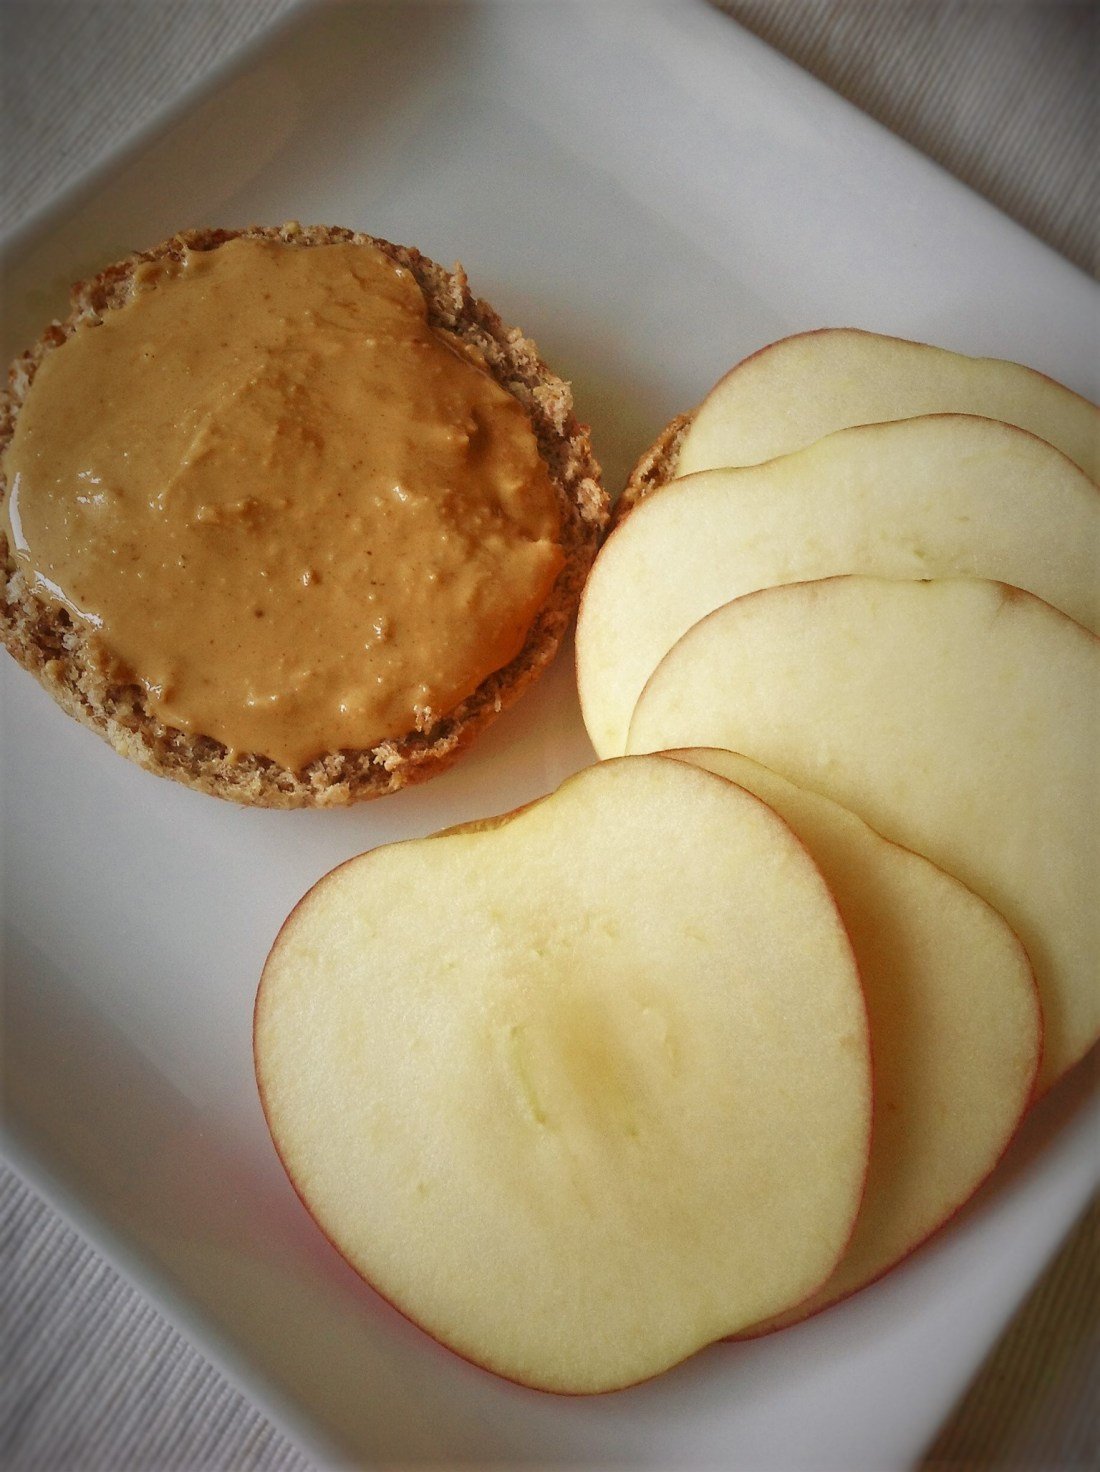 Healthy Vegan Snack in Less Than 5 Minutes: Peanut Butter Apple English Muffin